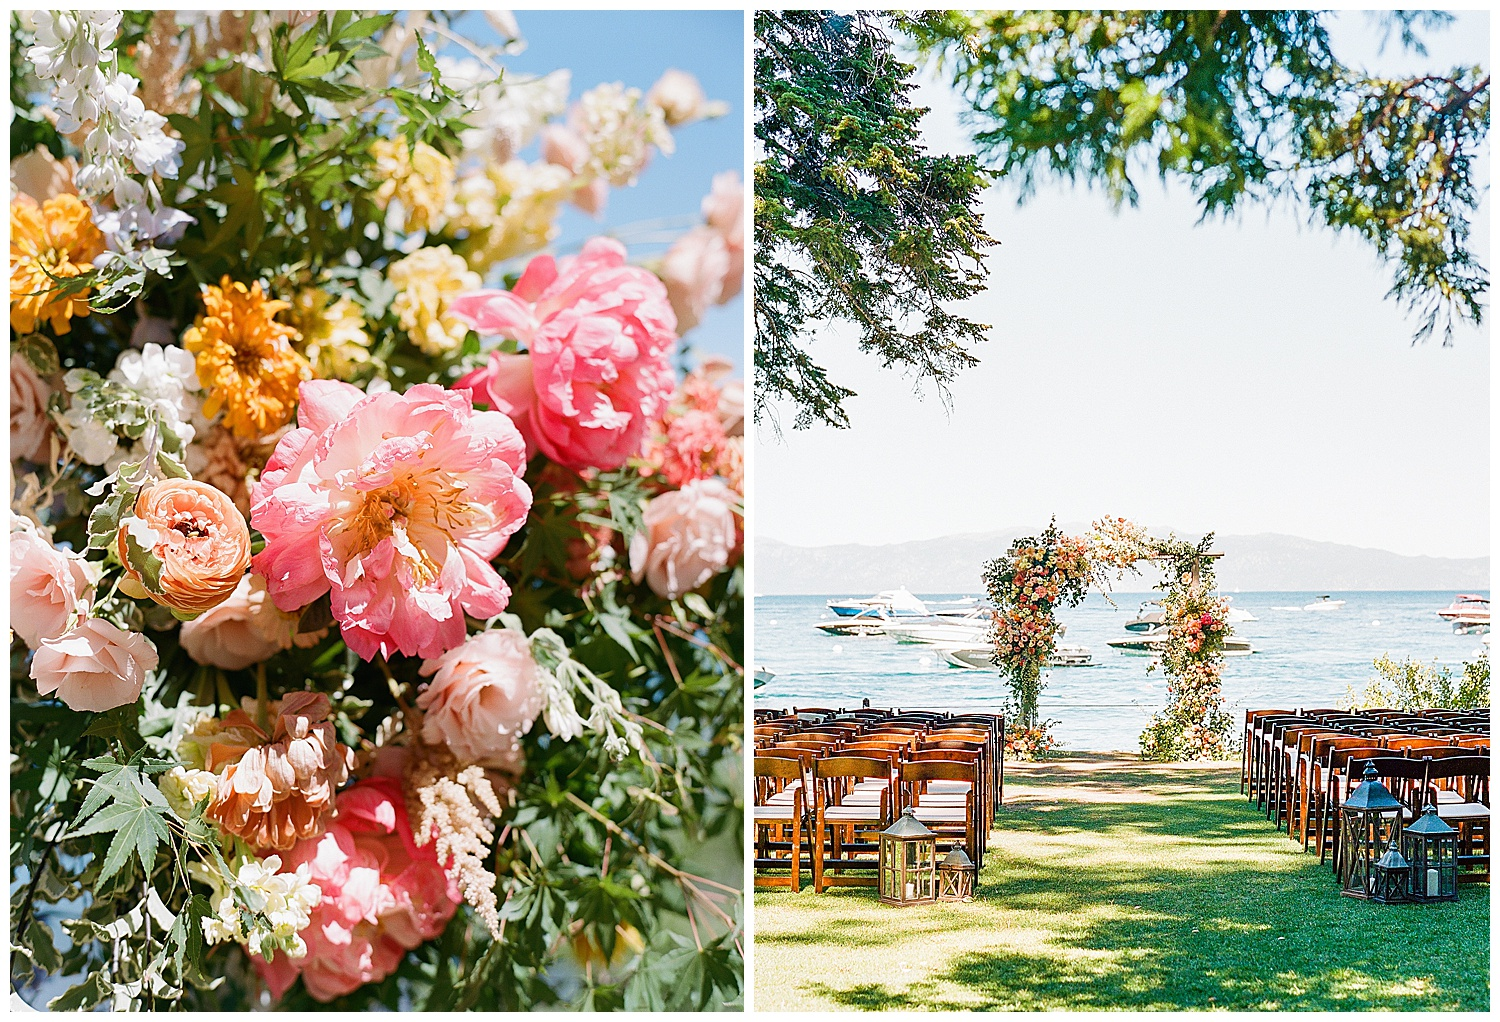 Janine_Licare_Photography_San_Francisco_Wedding_Photographer_Lake_Tahoe_West_Shore_Cafe_Colorful_Summer_0050.jpg